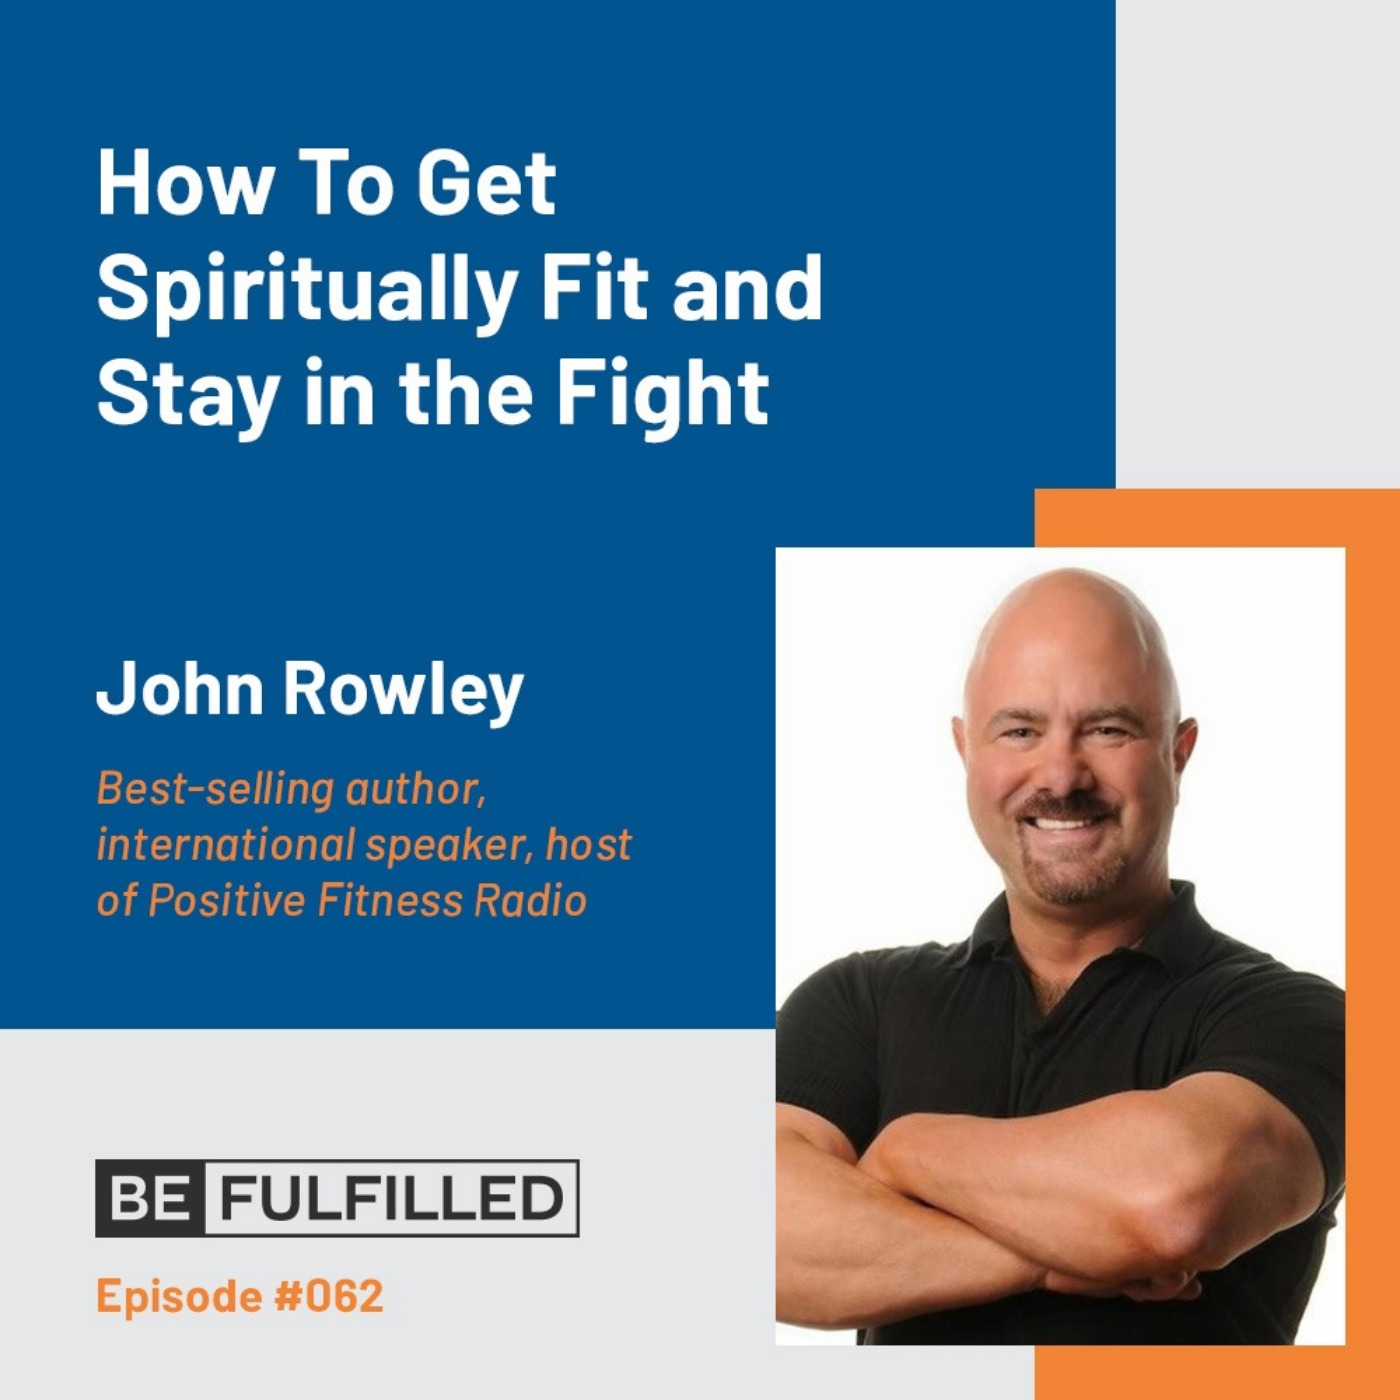 How To Get Spiritually Fit and Stay in the Fight - John Rowley